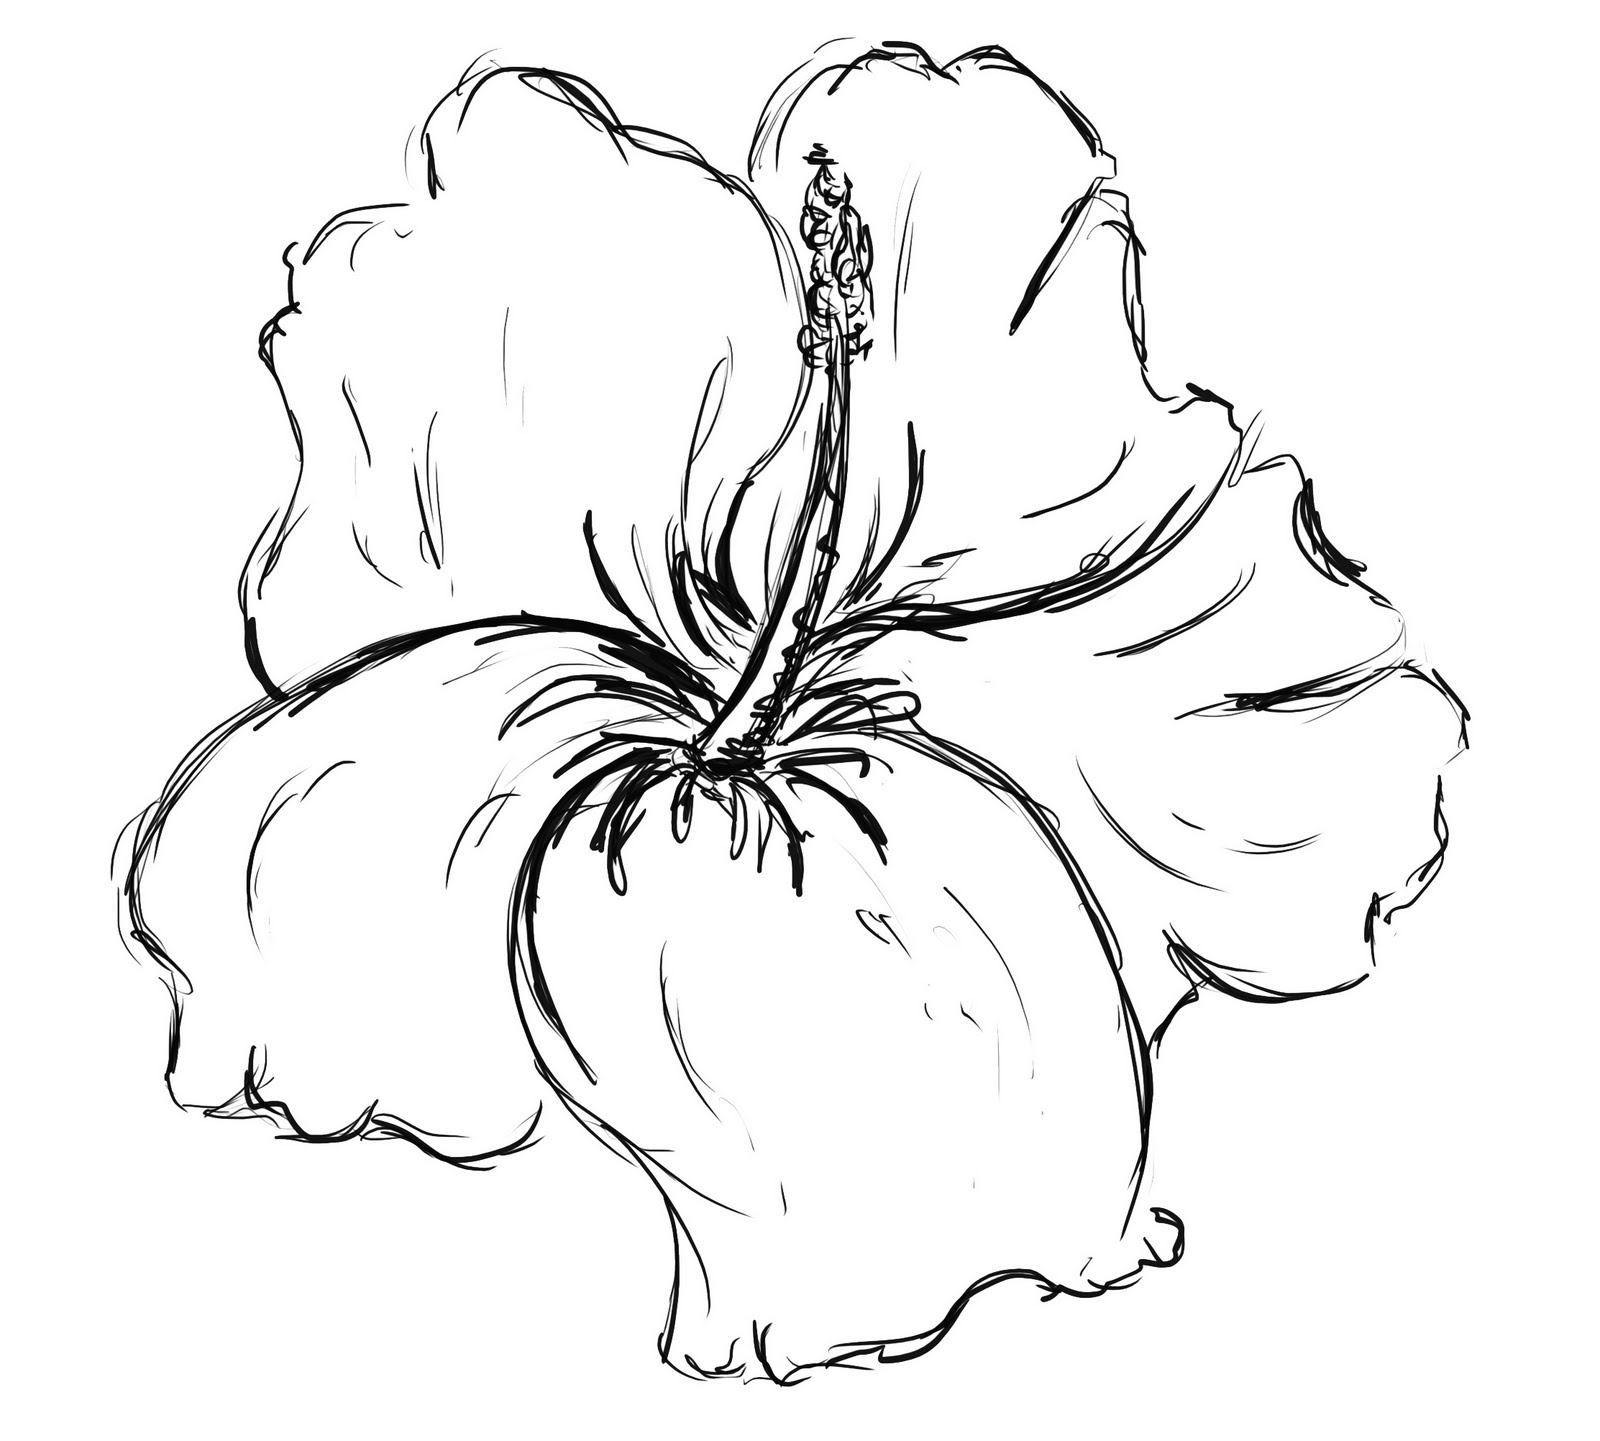 Hibiscus Flower Drawing: Pictures Of Flowers To Draw